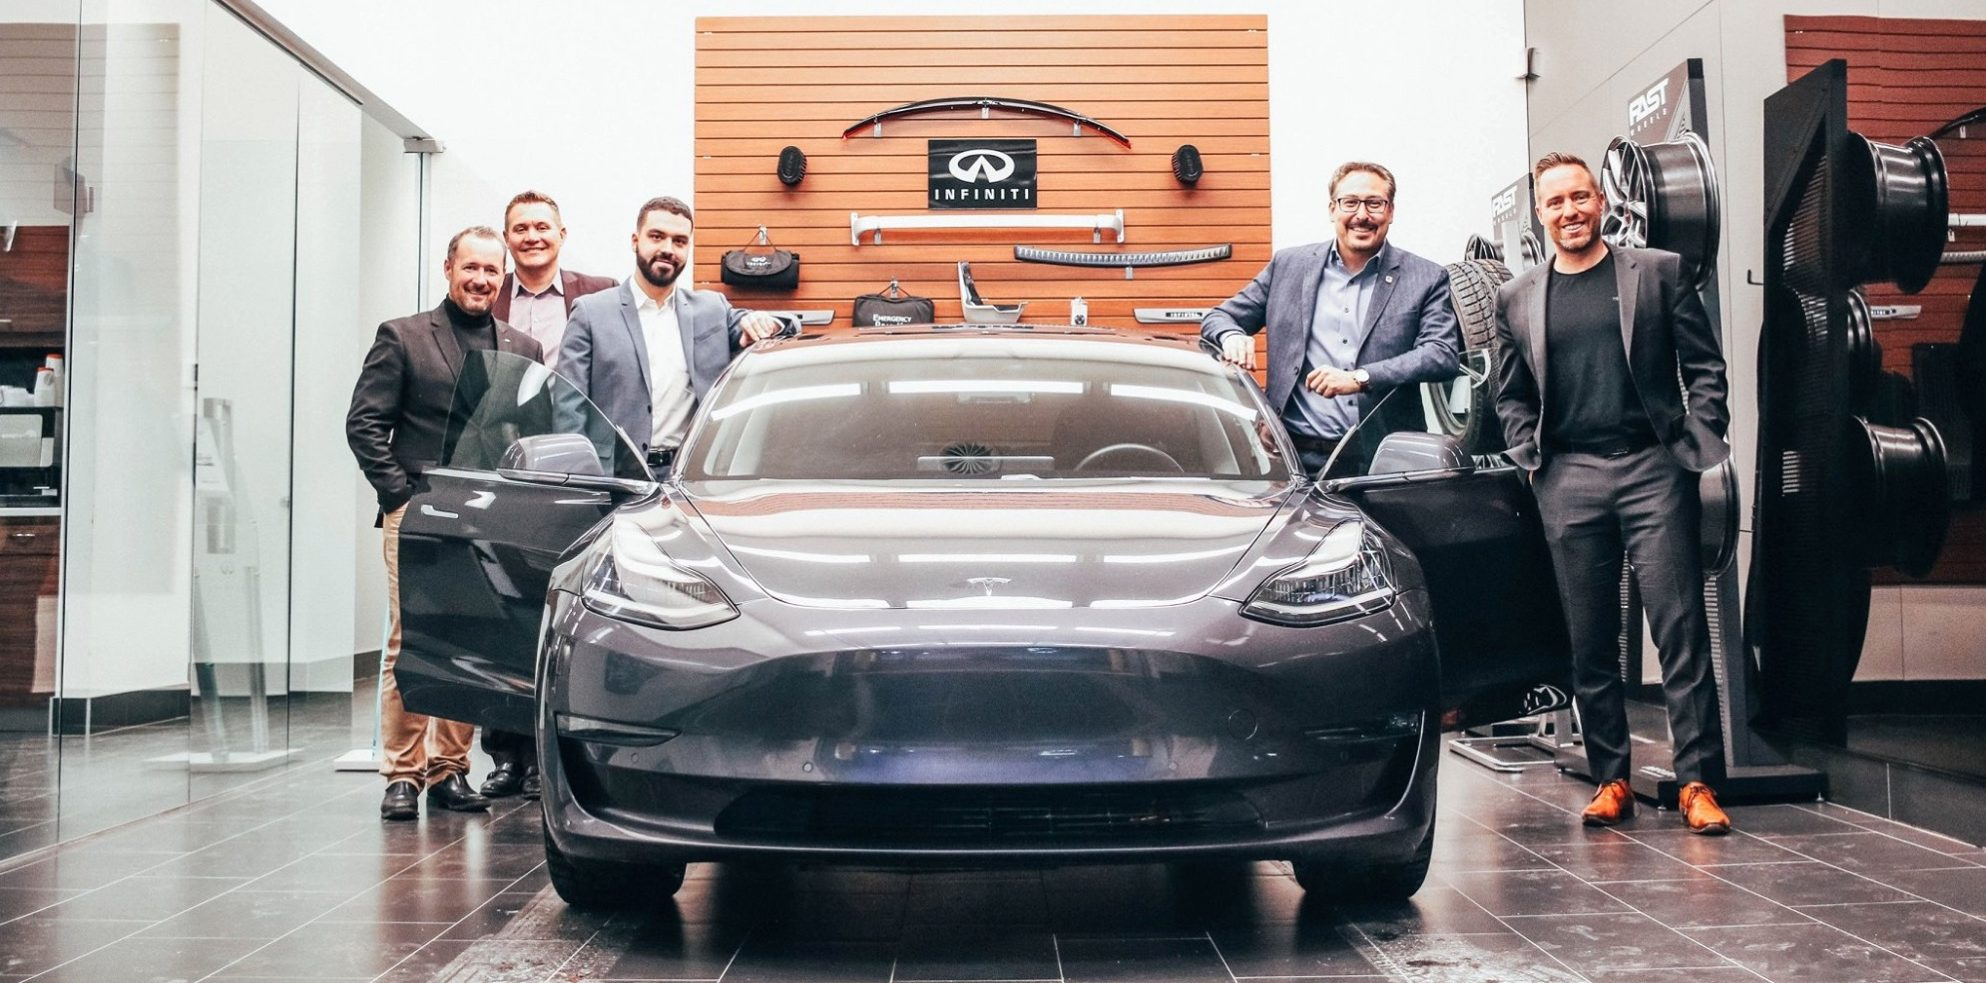 Infiniti delivers Tesla Model 3 to loyal customer who wanted to go electric due to lack of options - Electrek